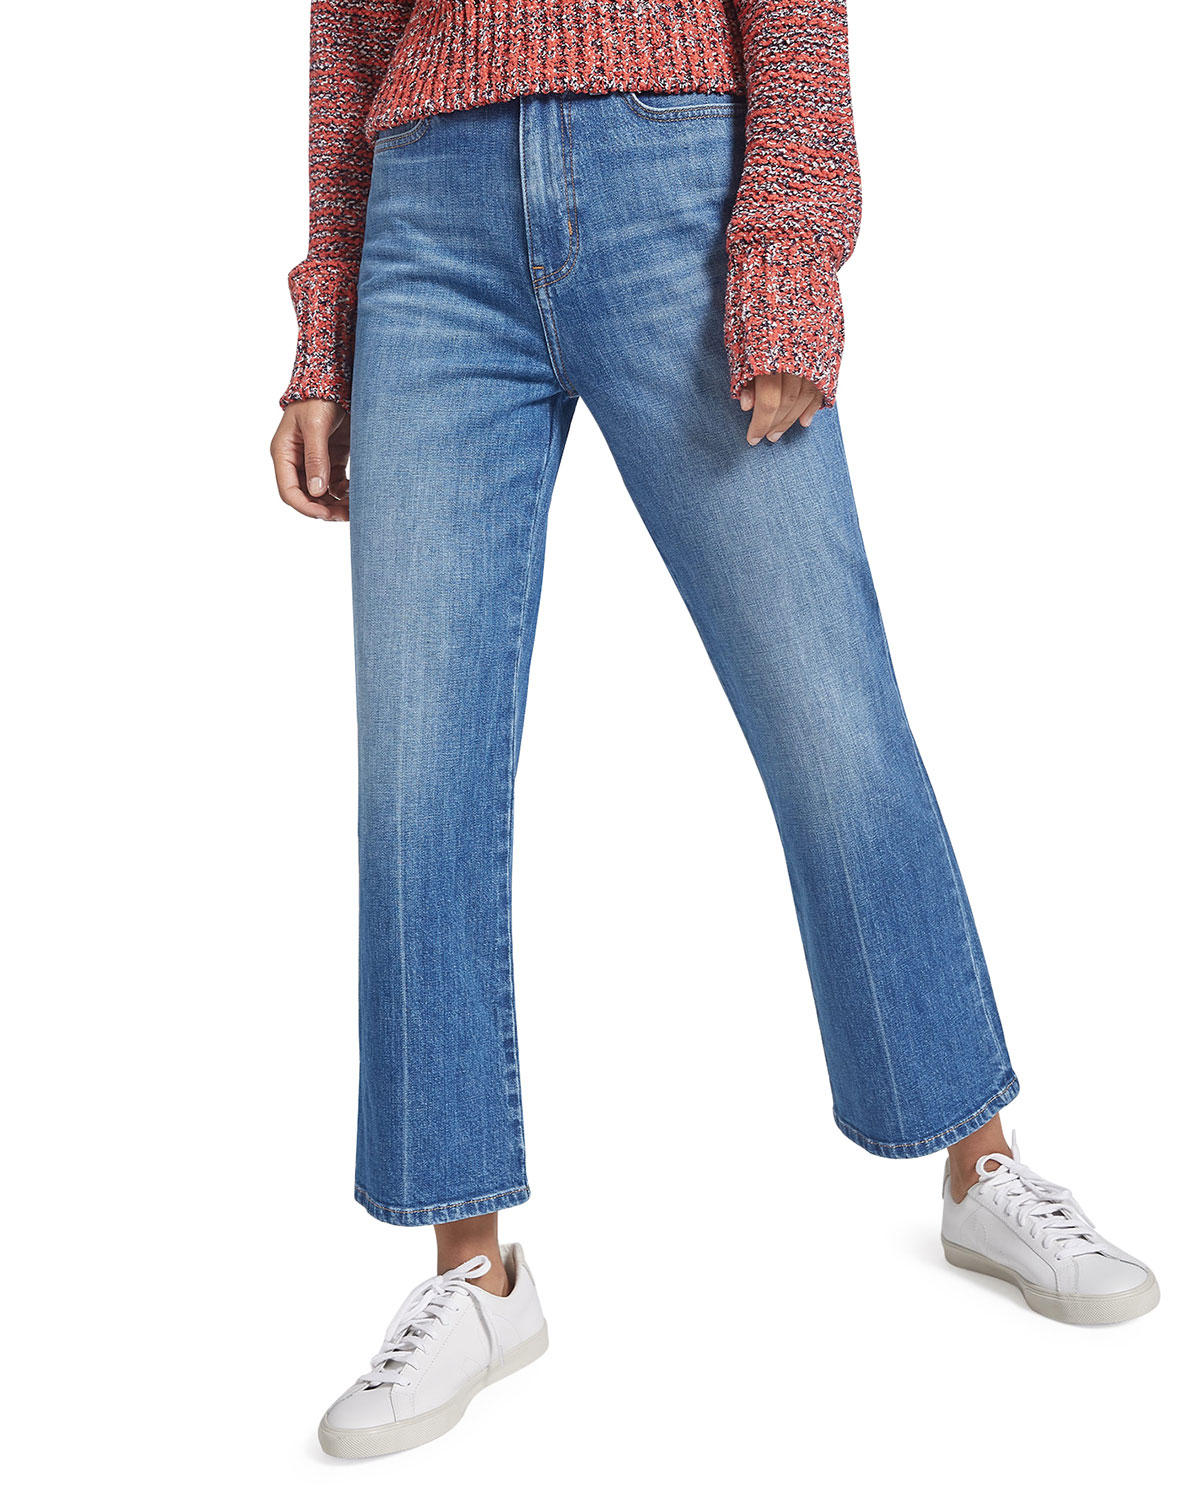 The Femme Cropped Bell Jeans